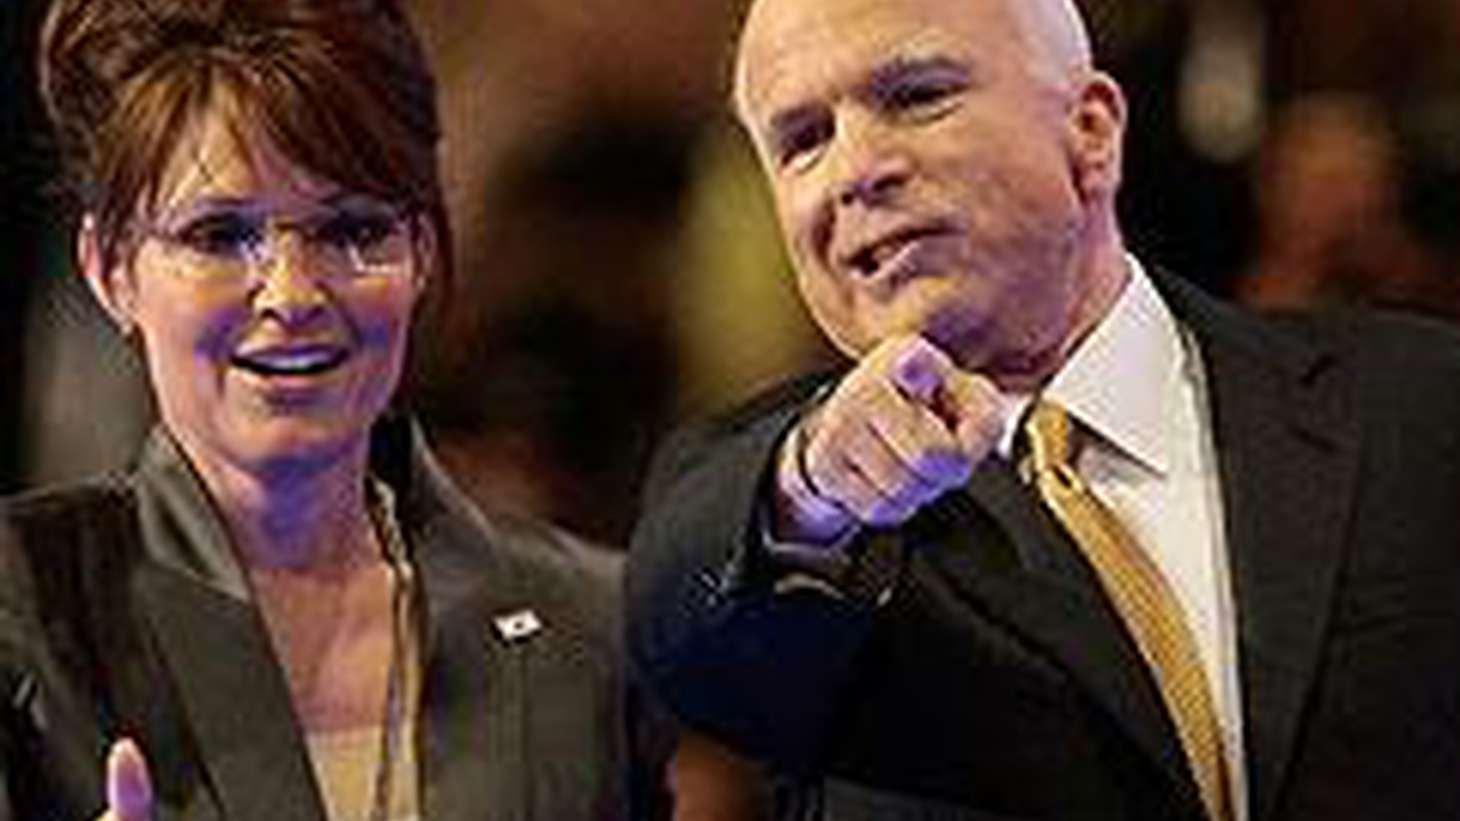 John McCain and his running mate Sarah Palin have used the convention spotlight to paint the GOP as the party most in sync with mainstream America. Can the party that's held the White House for eight years claim the mantle of change? Also, the jobless rate hits a new five-year high, and 12% to 15% of voters have yet to make up their minds. Which way will the Independents swing after these conventions? Judy Muller guest hosts.